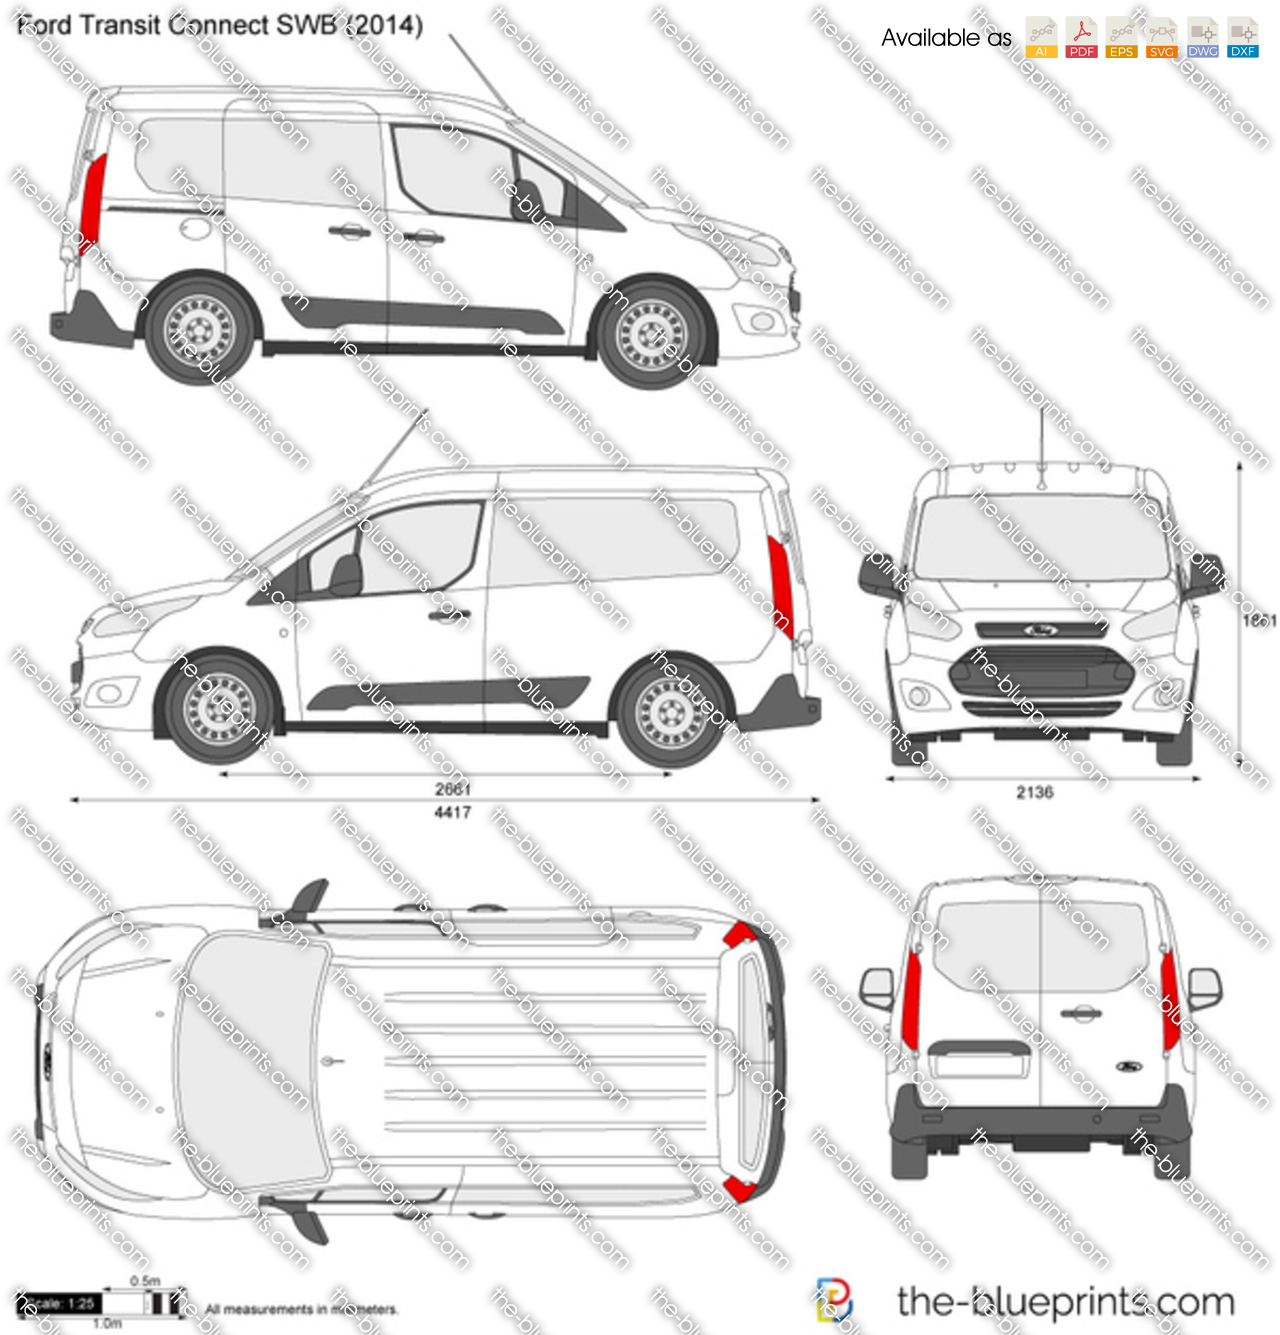 Ford Transit Connect SWB 2016